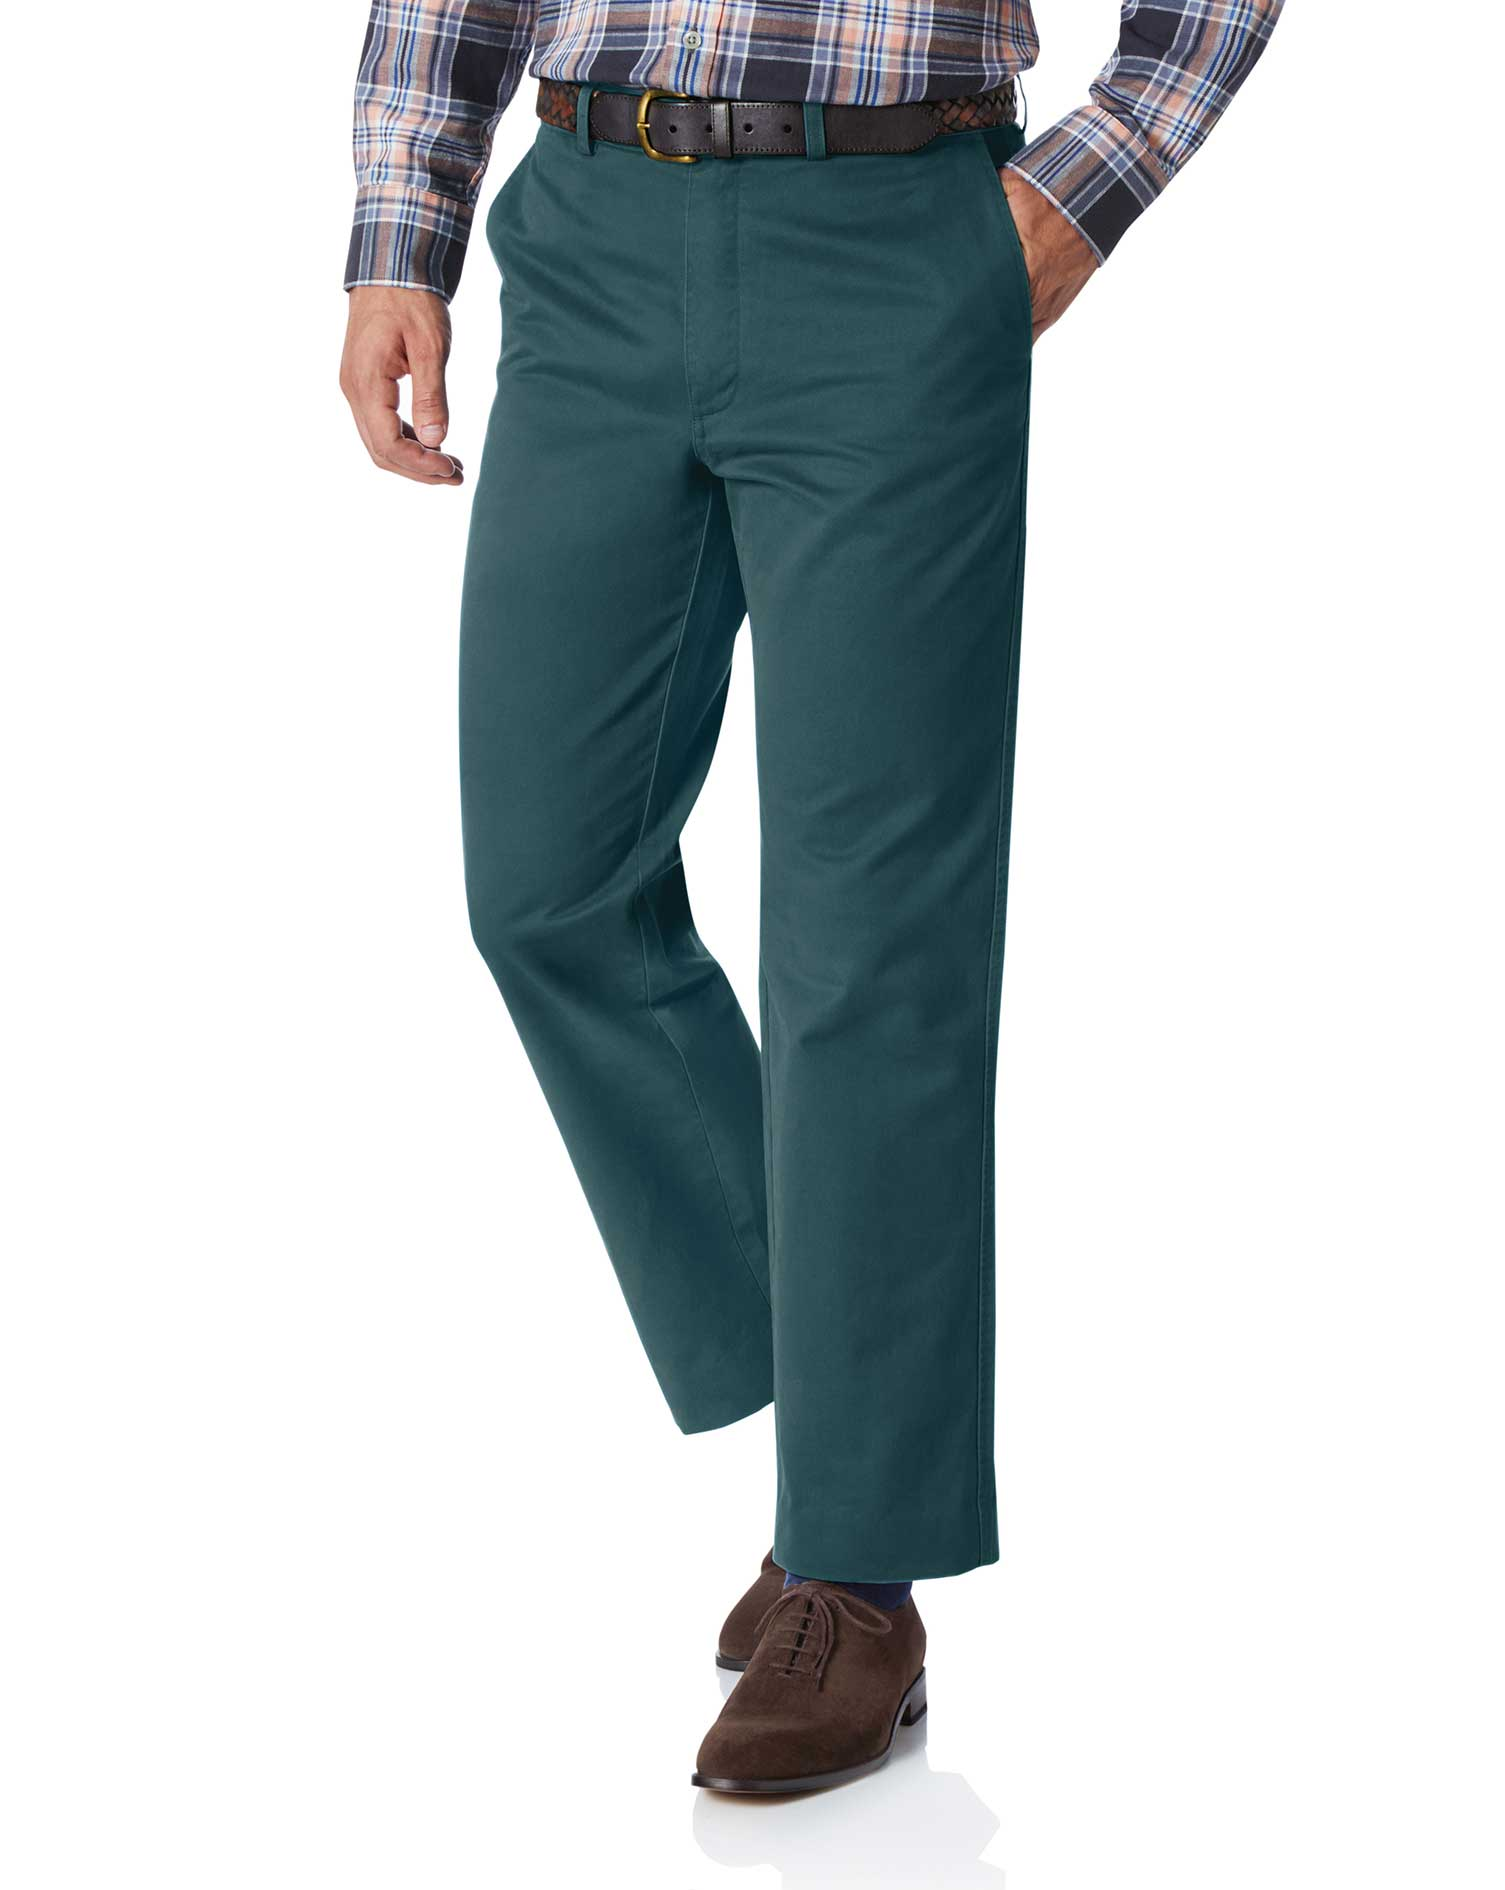 Teal Classic Fit Flat Front Washed Cotton Chino Trousers Size W38 L30 by Charles Tyrwhitt